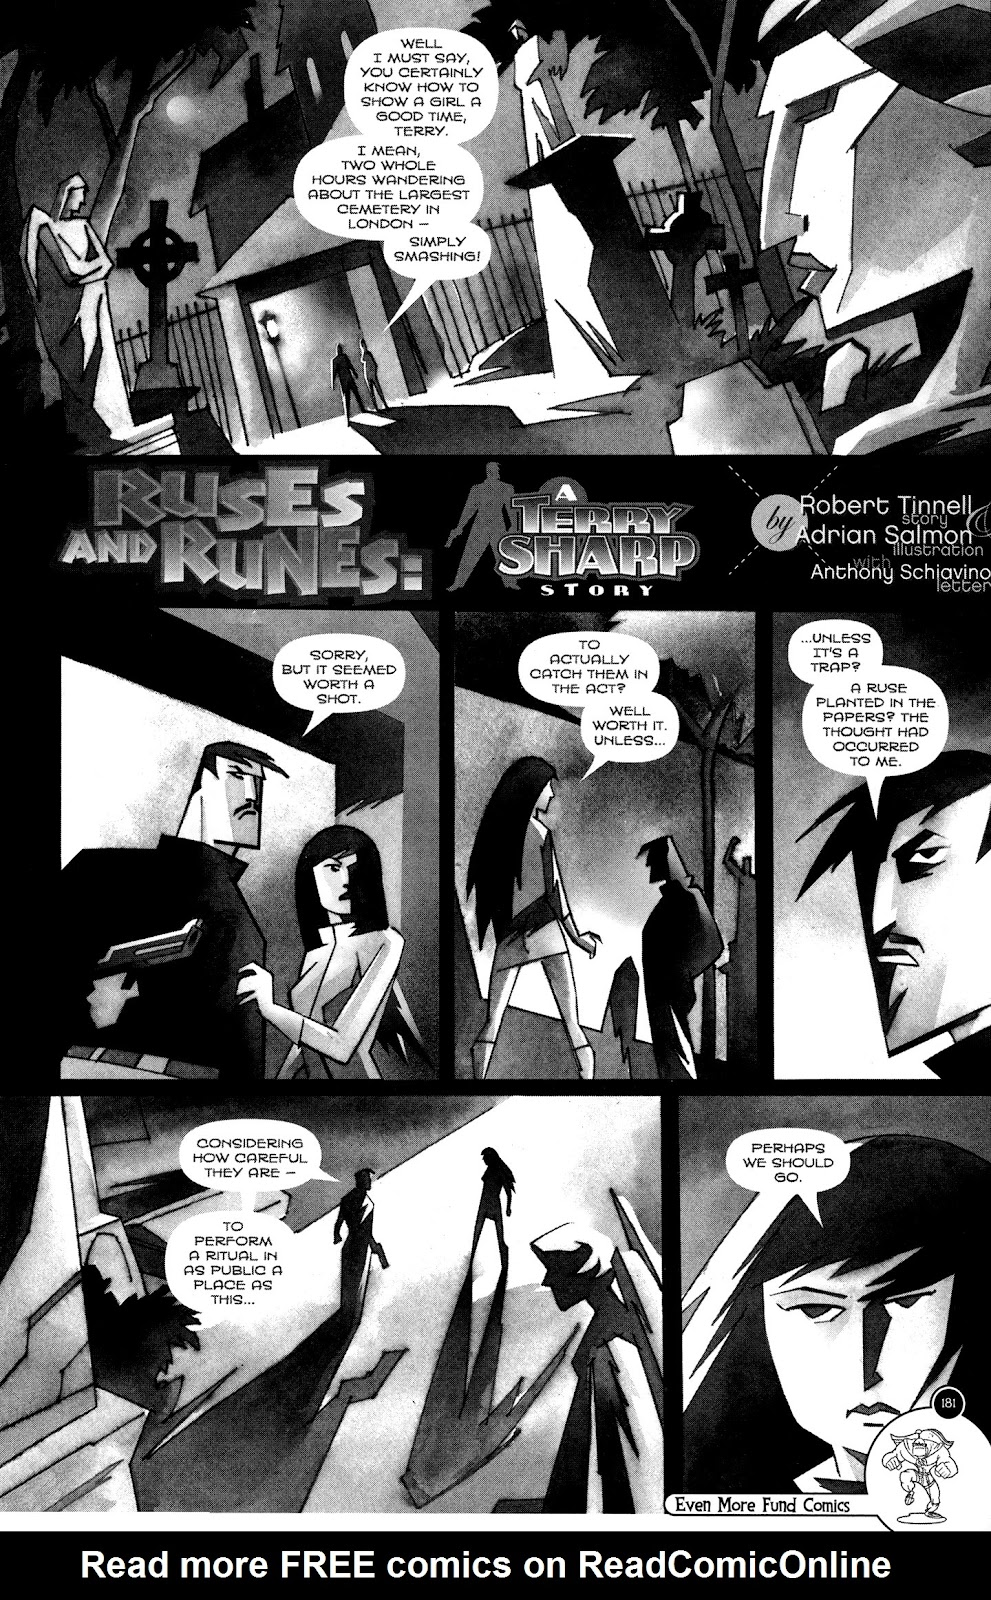 Read online Even More Fund Comics comic -  Issue # TPB (Part 2) - 84